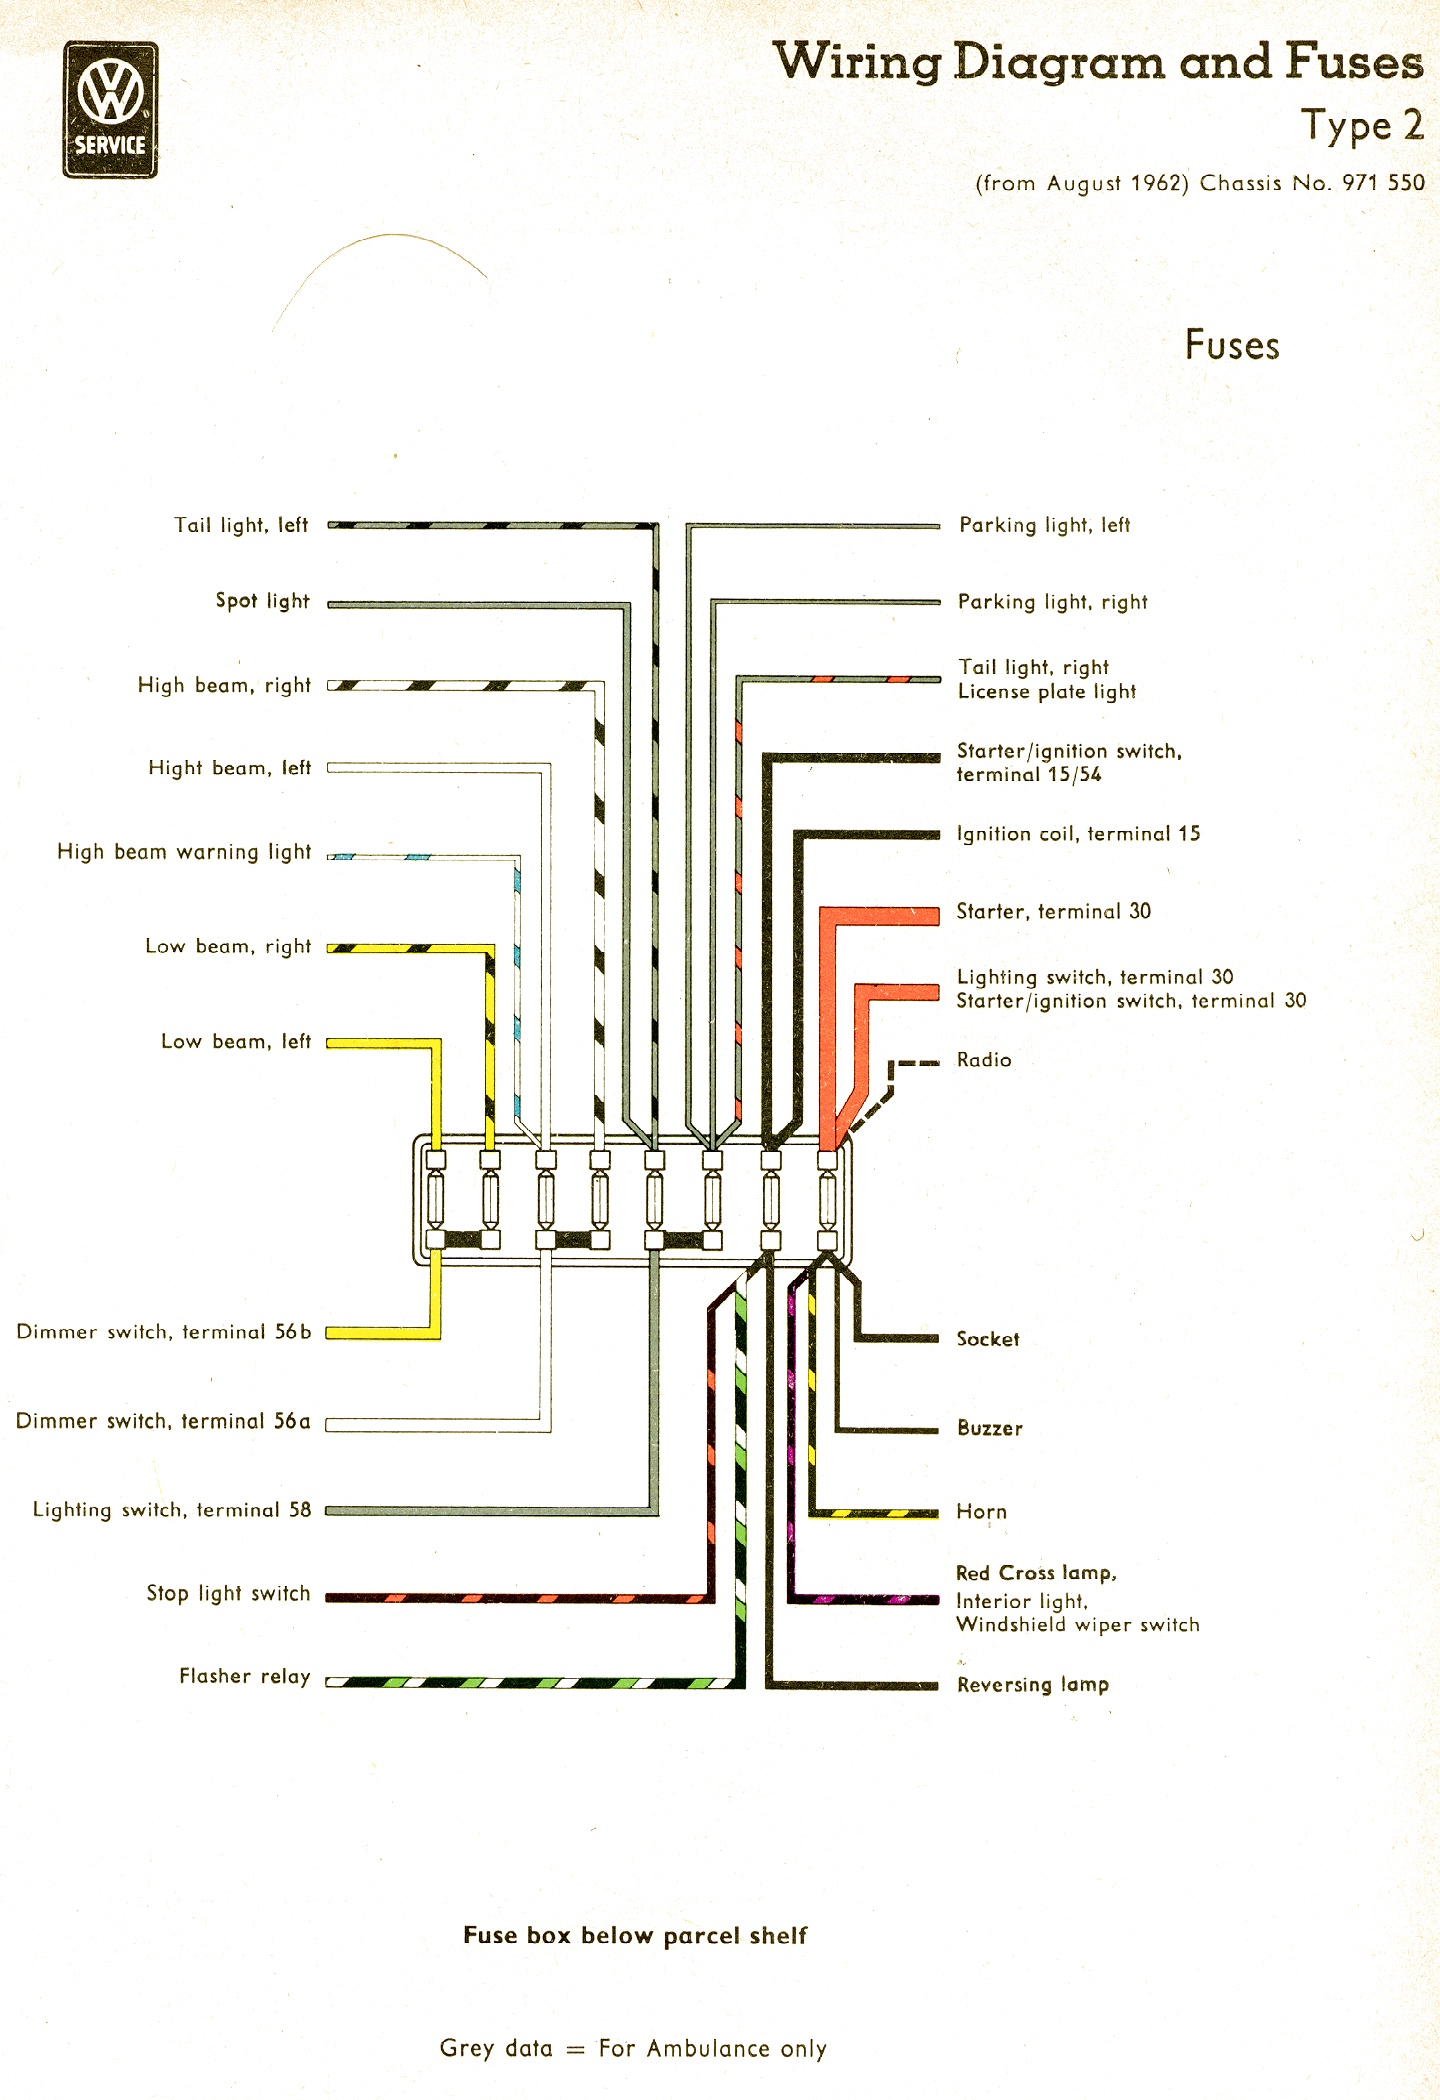 wiring diagram for 1971 vw bus the wiring diagram vintagebus vw bus and other wiring diagrams wiring diagram